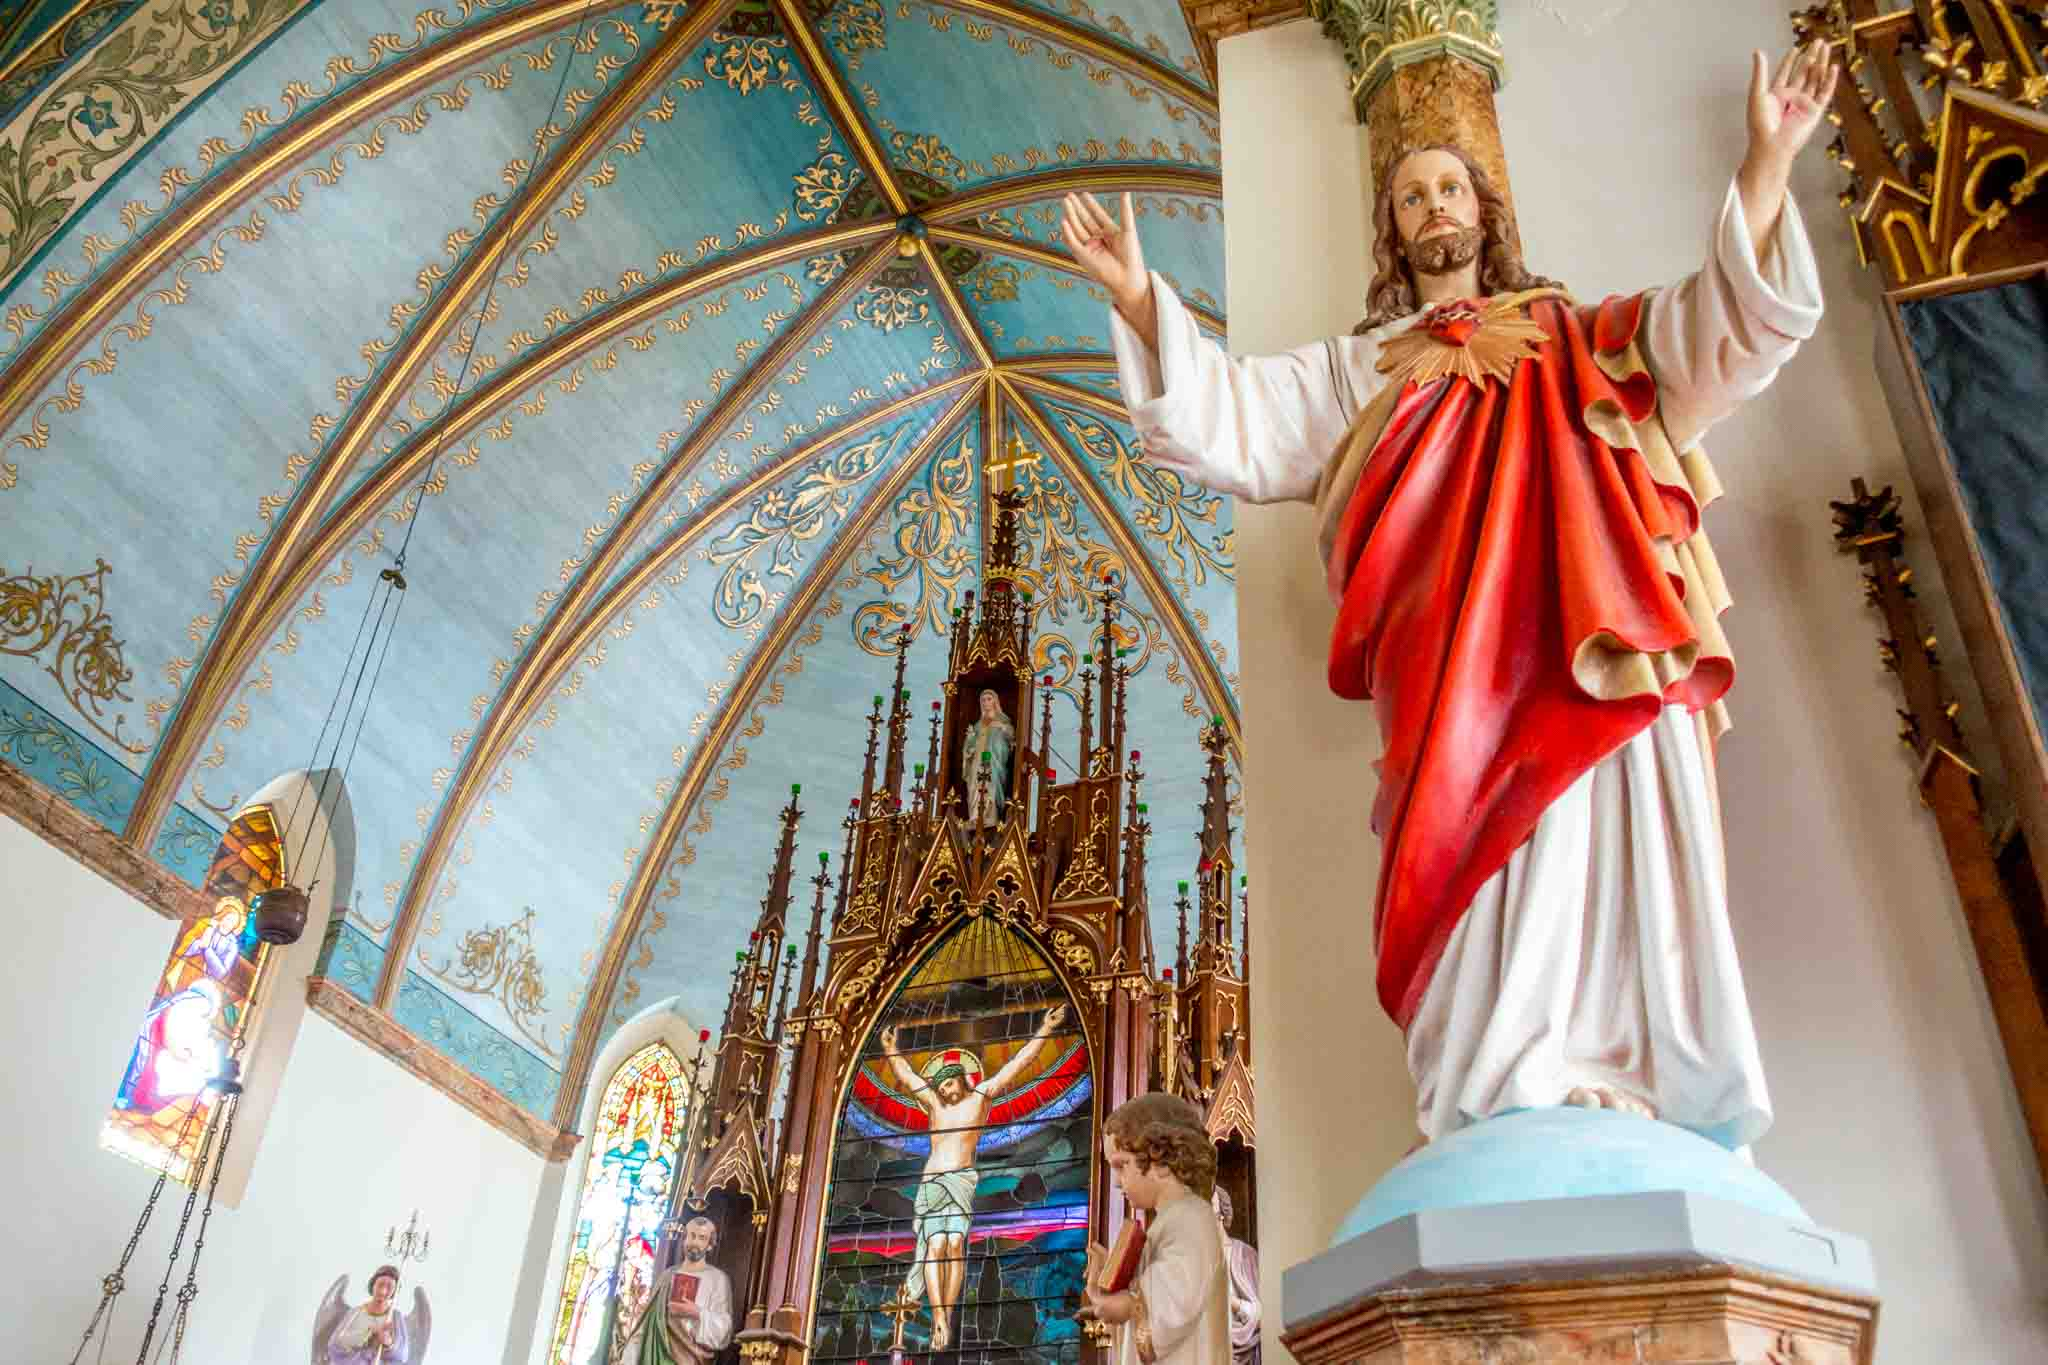 Statue of Jesus and altar in one of the painted churches of Texas